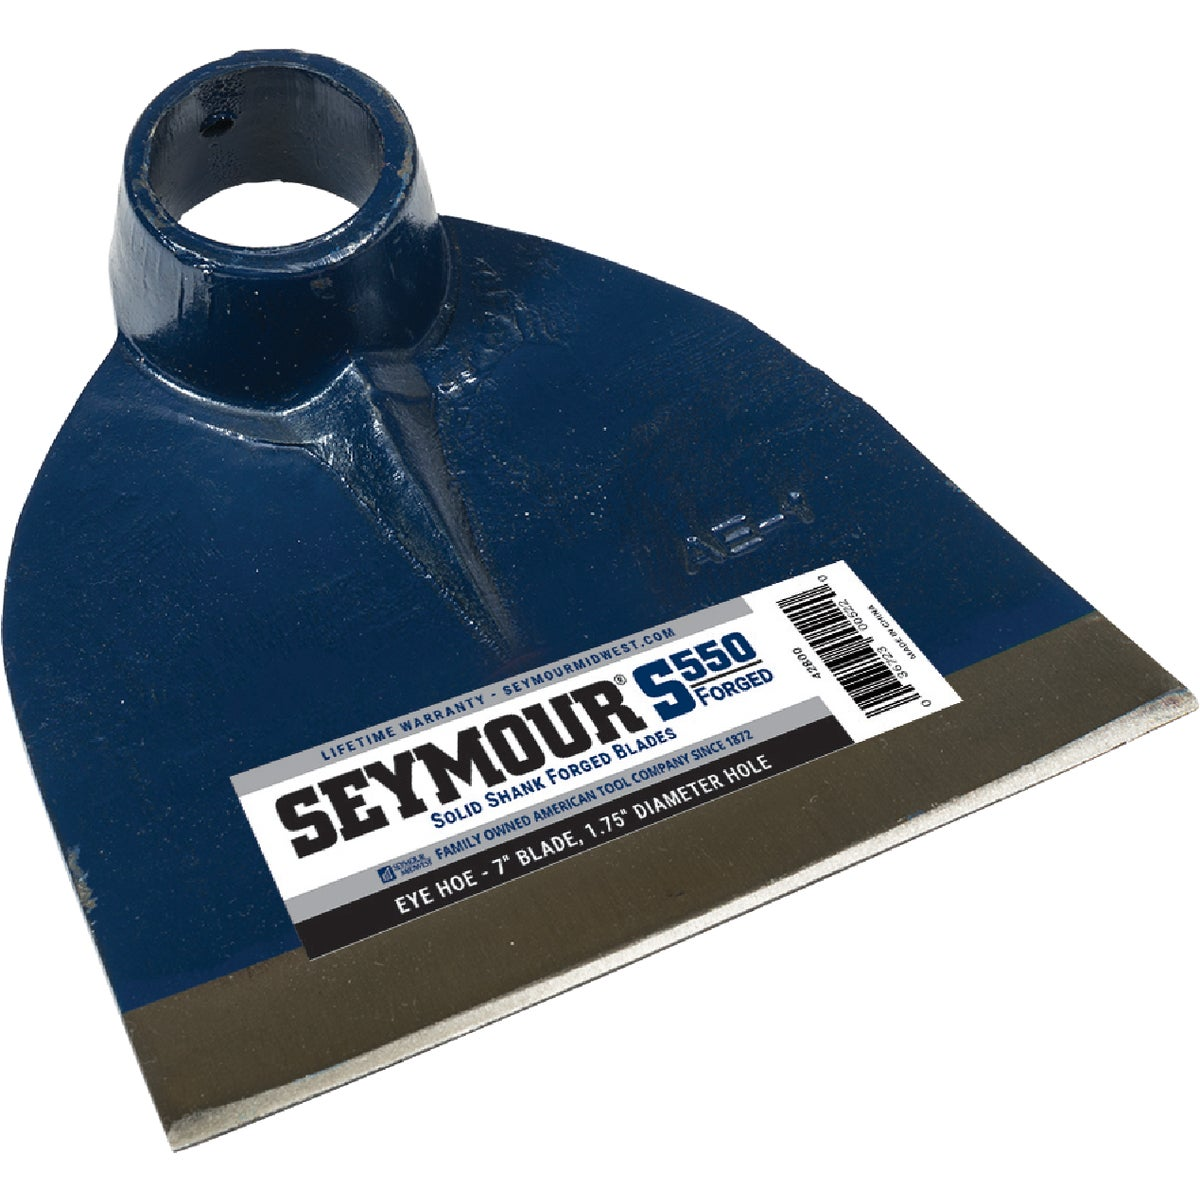 "7"" BLADE EYE HOE - 2E-AEO by Seymour Mfg Co"